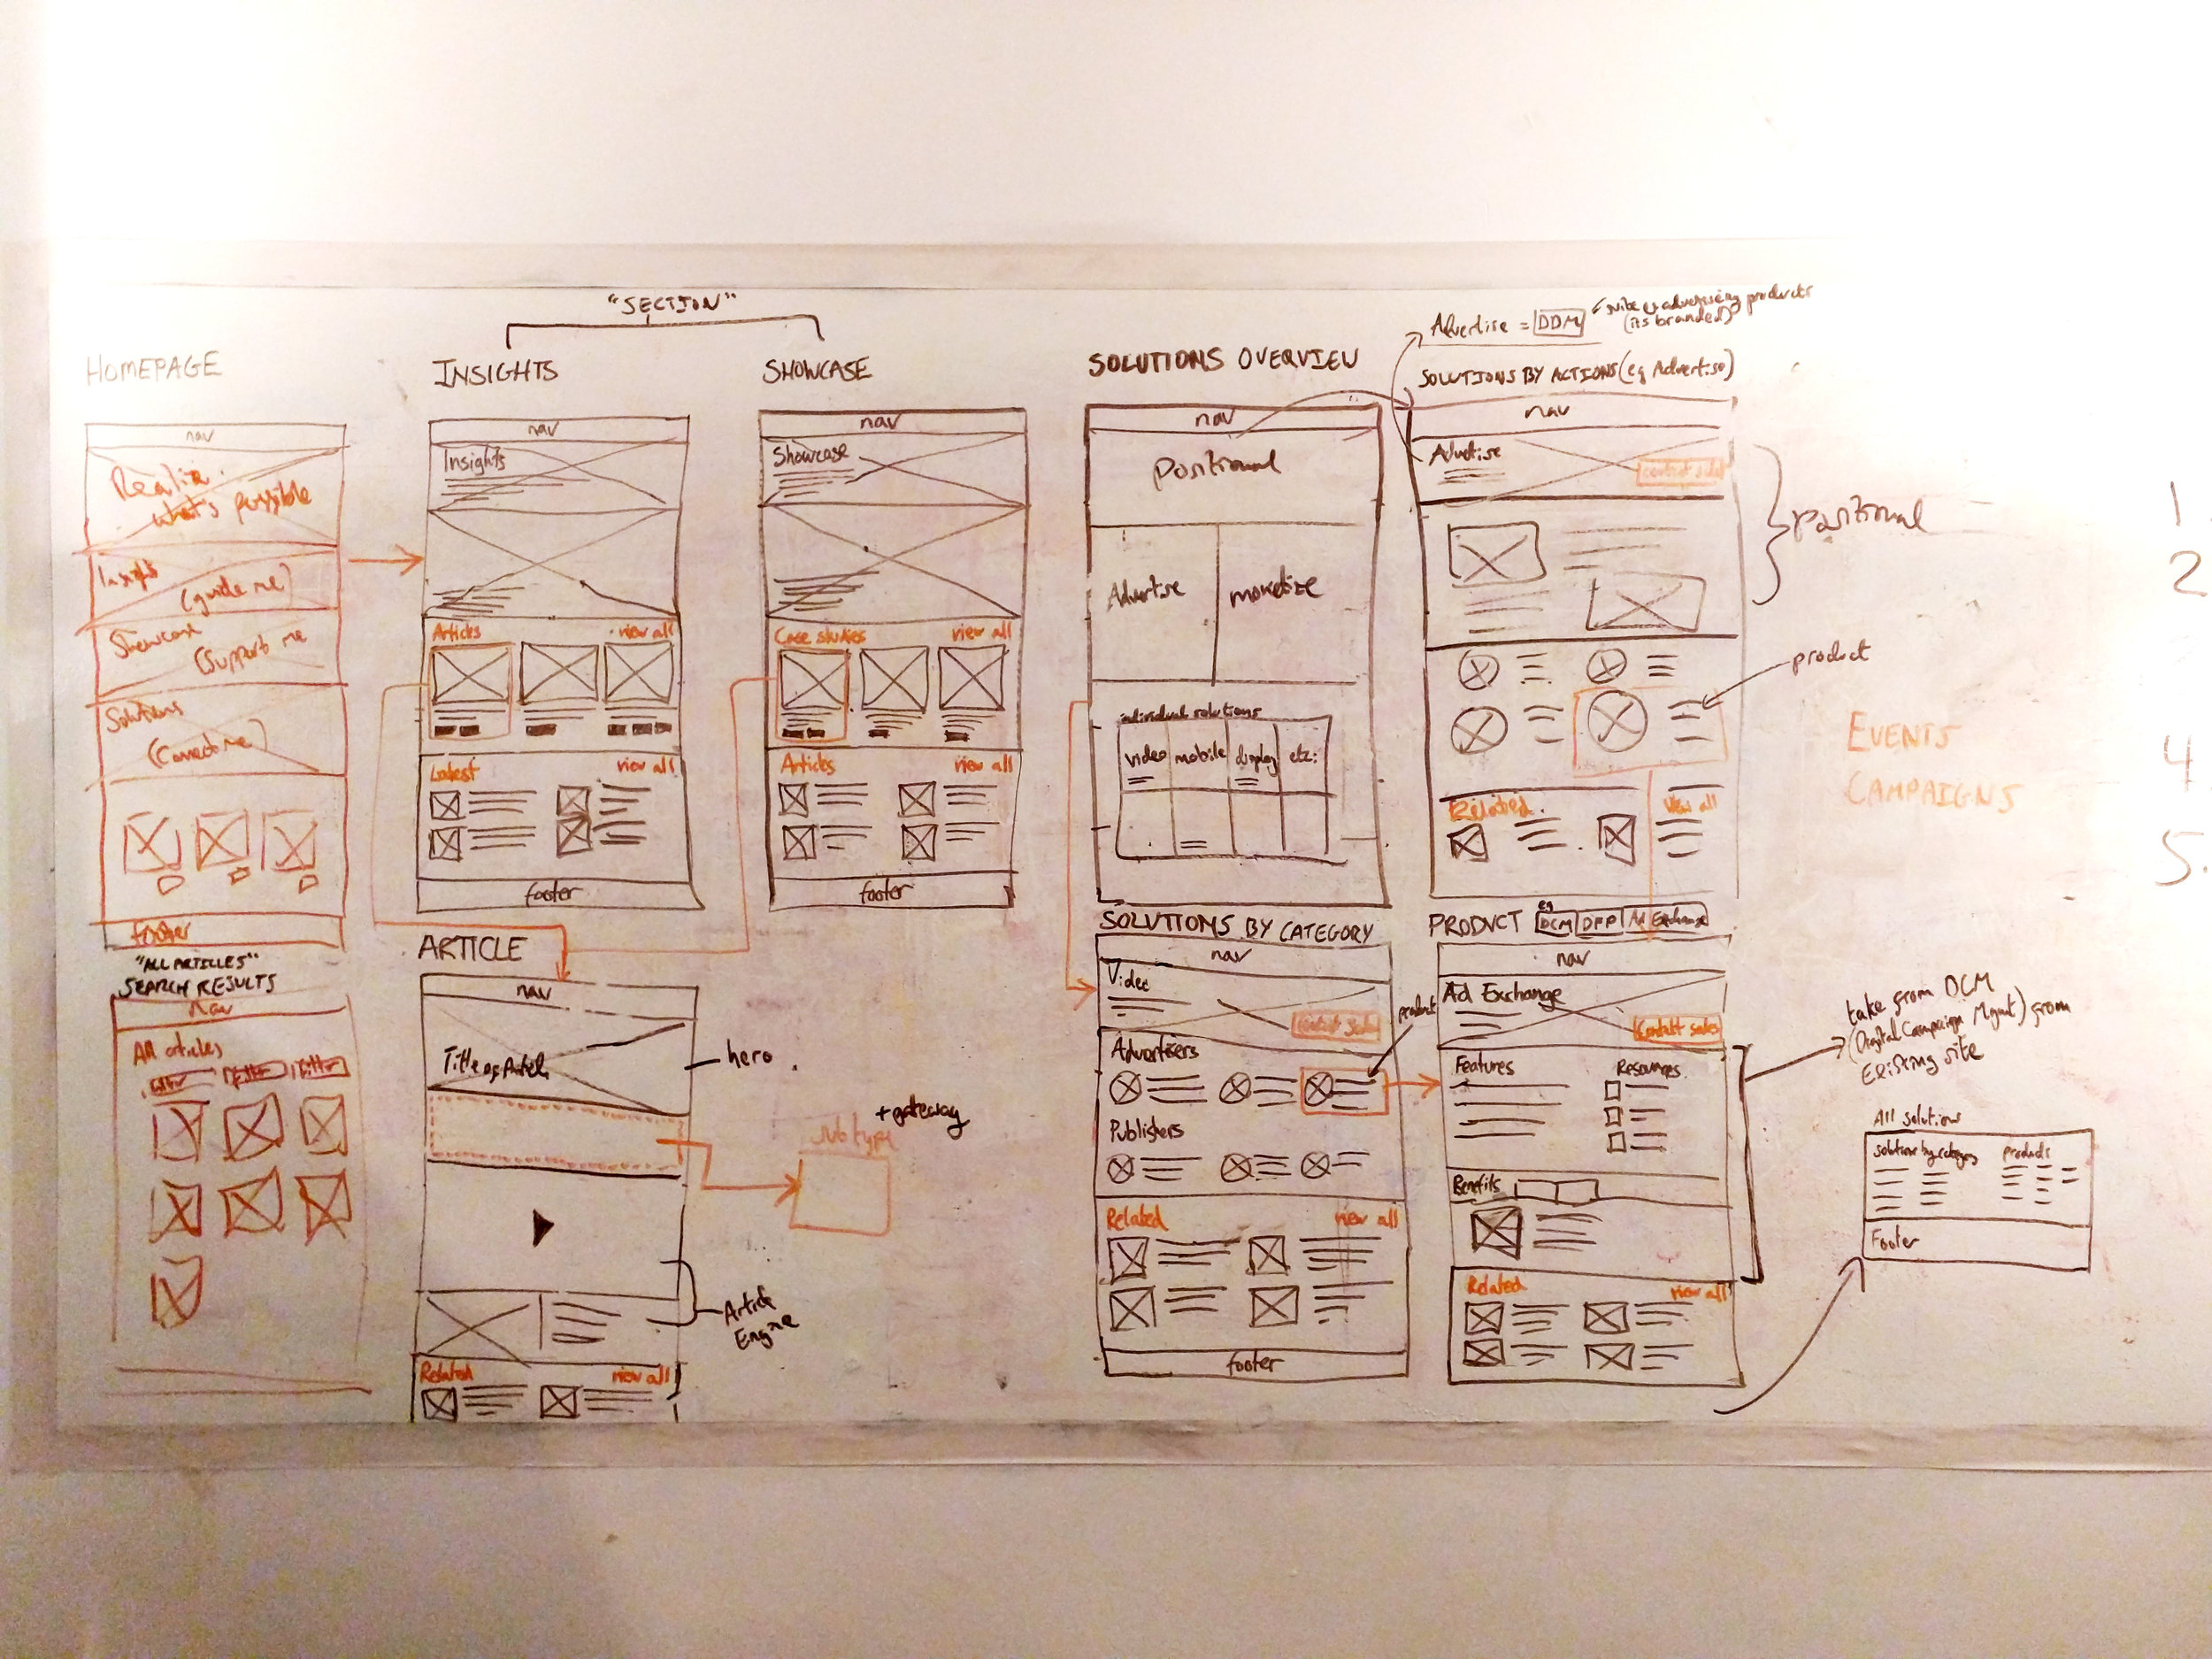 High-level wireframes - site-wide